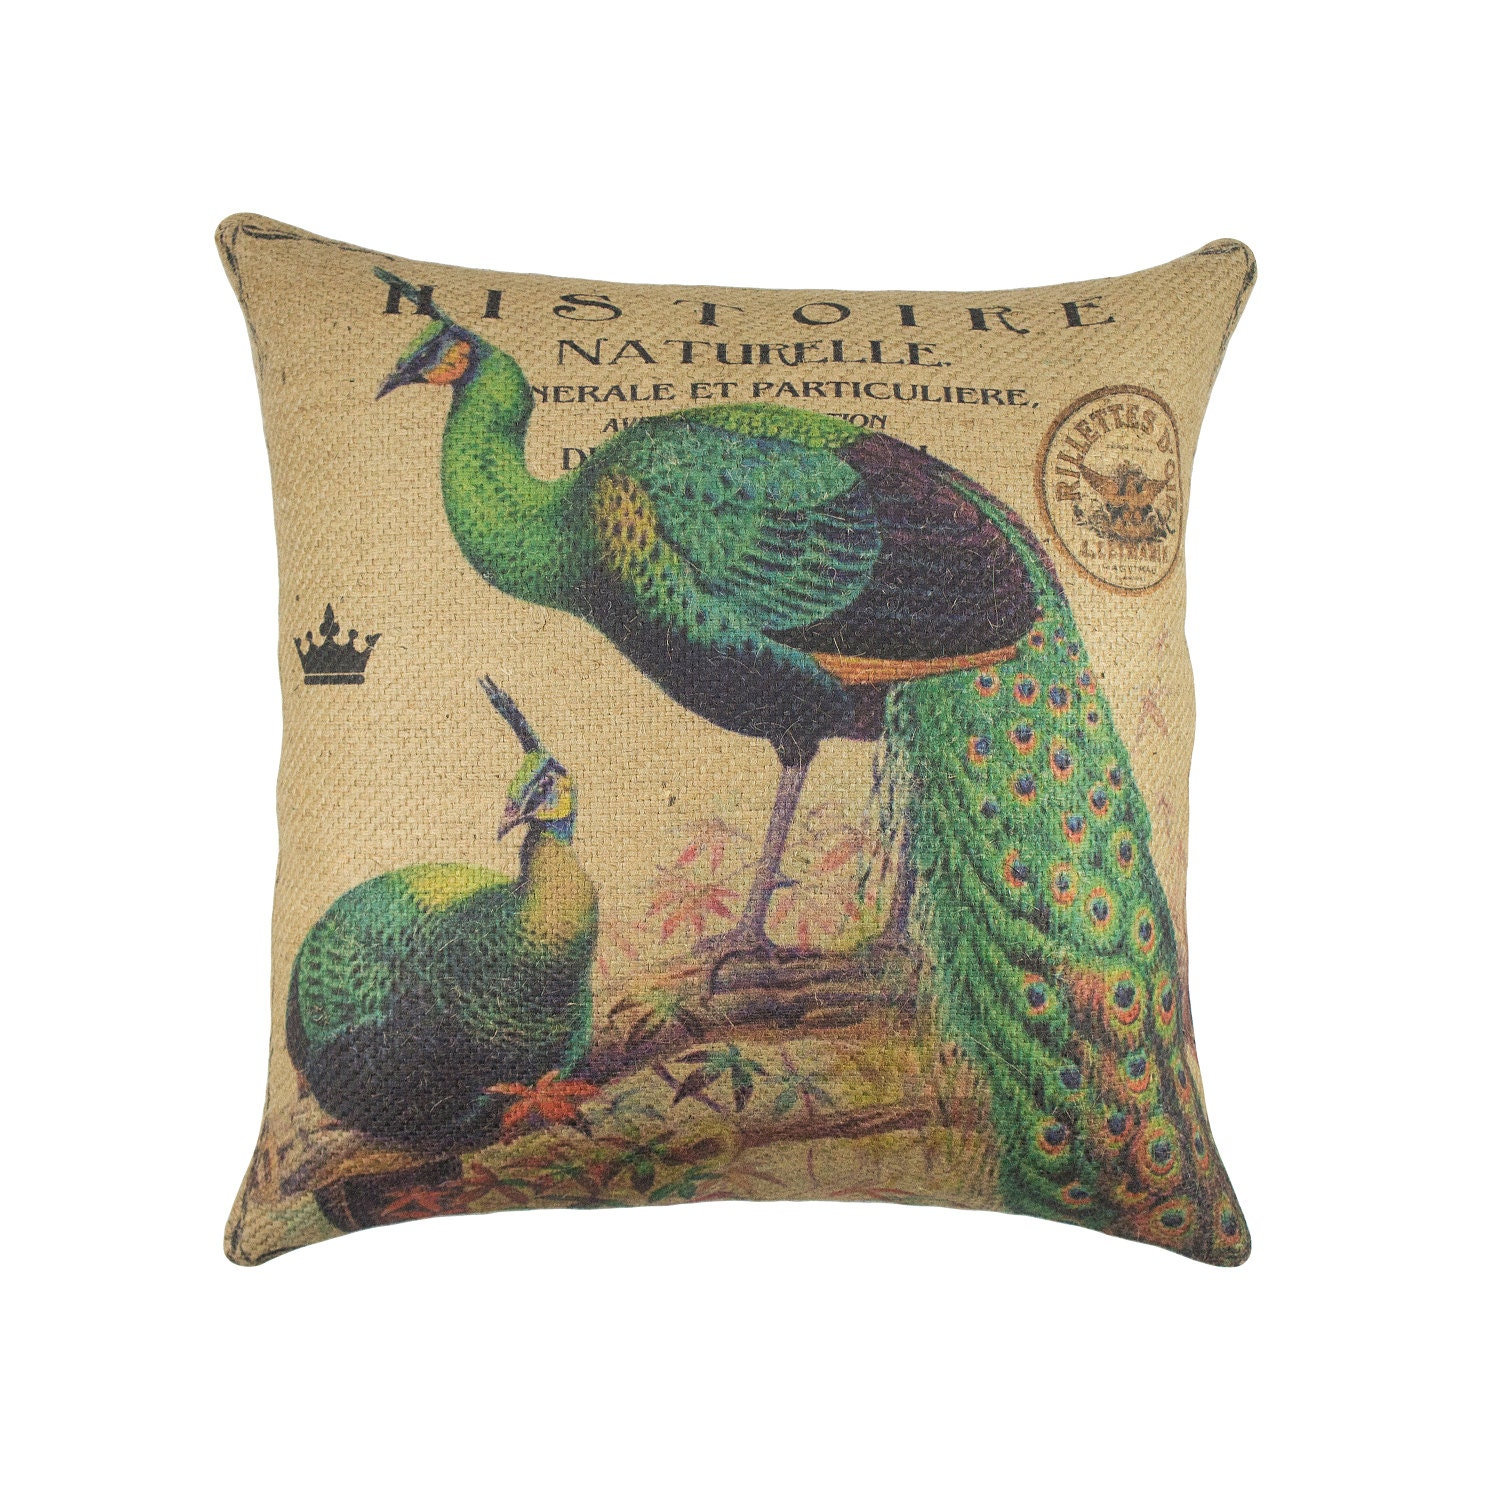 Throw Pillow Peacock : Chandeliers & Pendant Lights